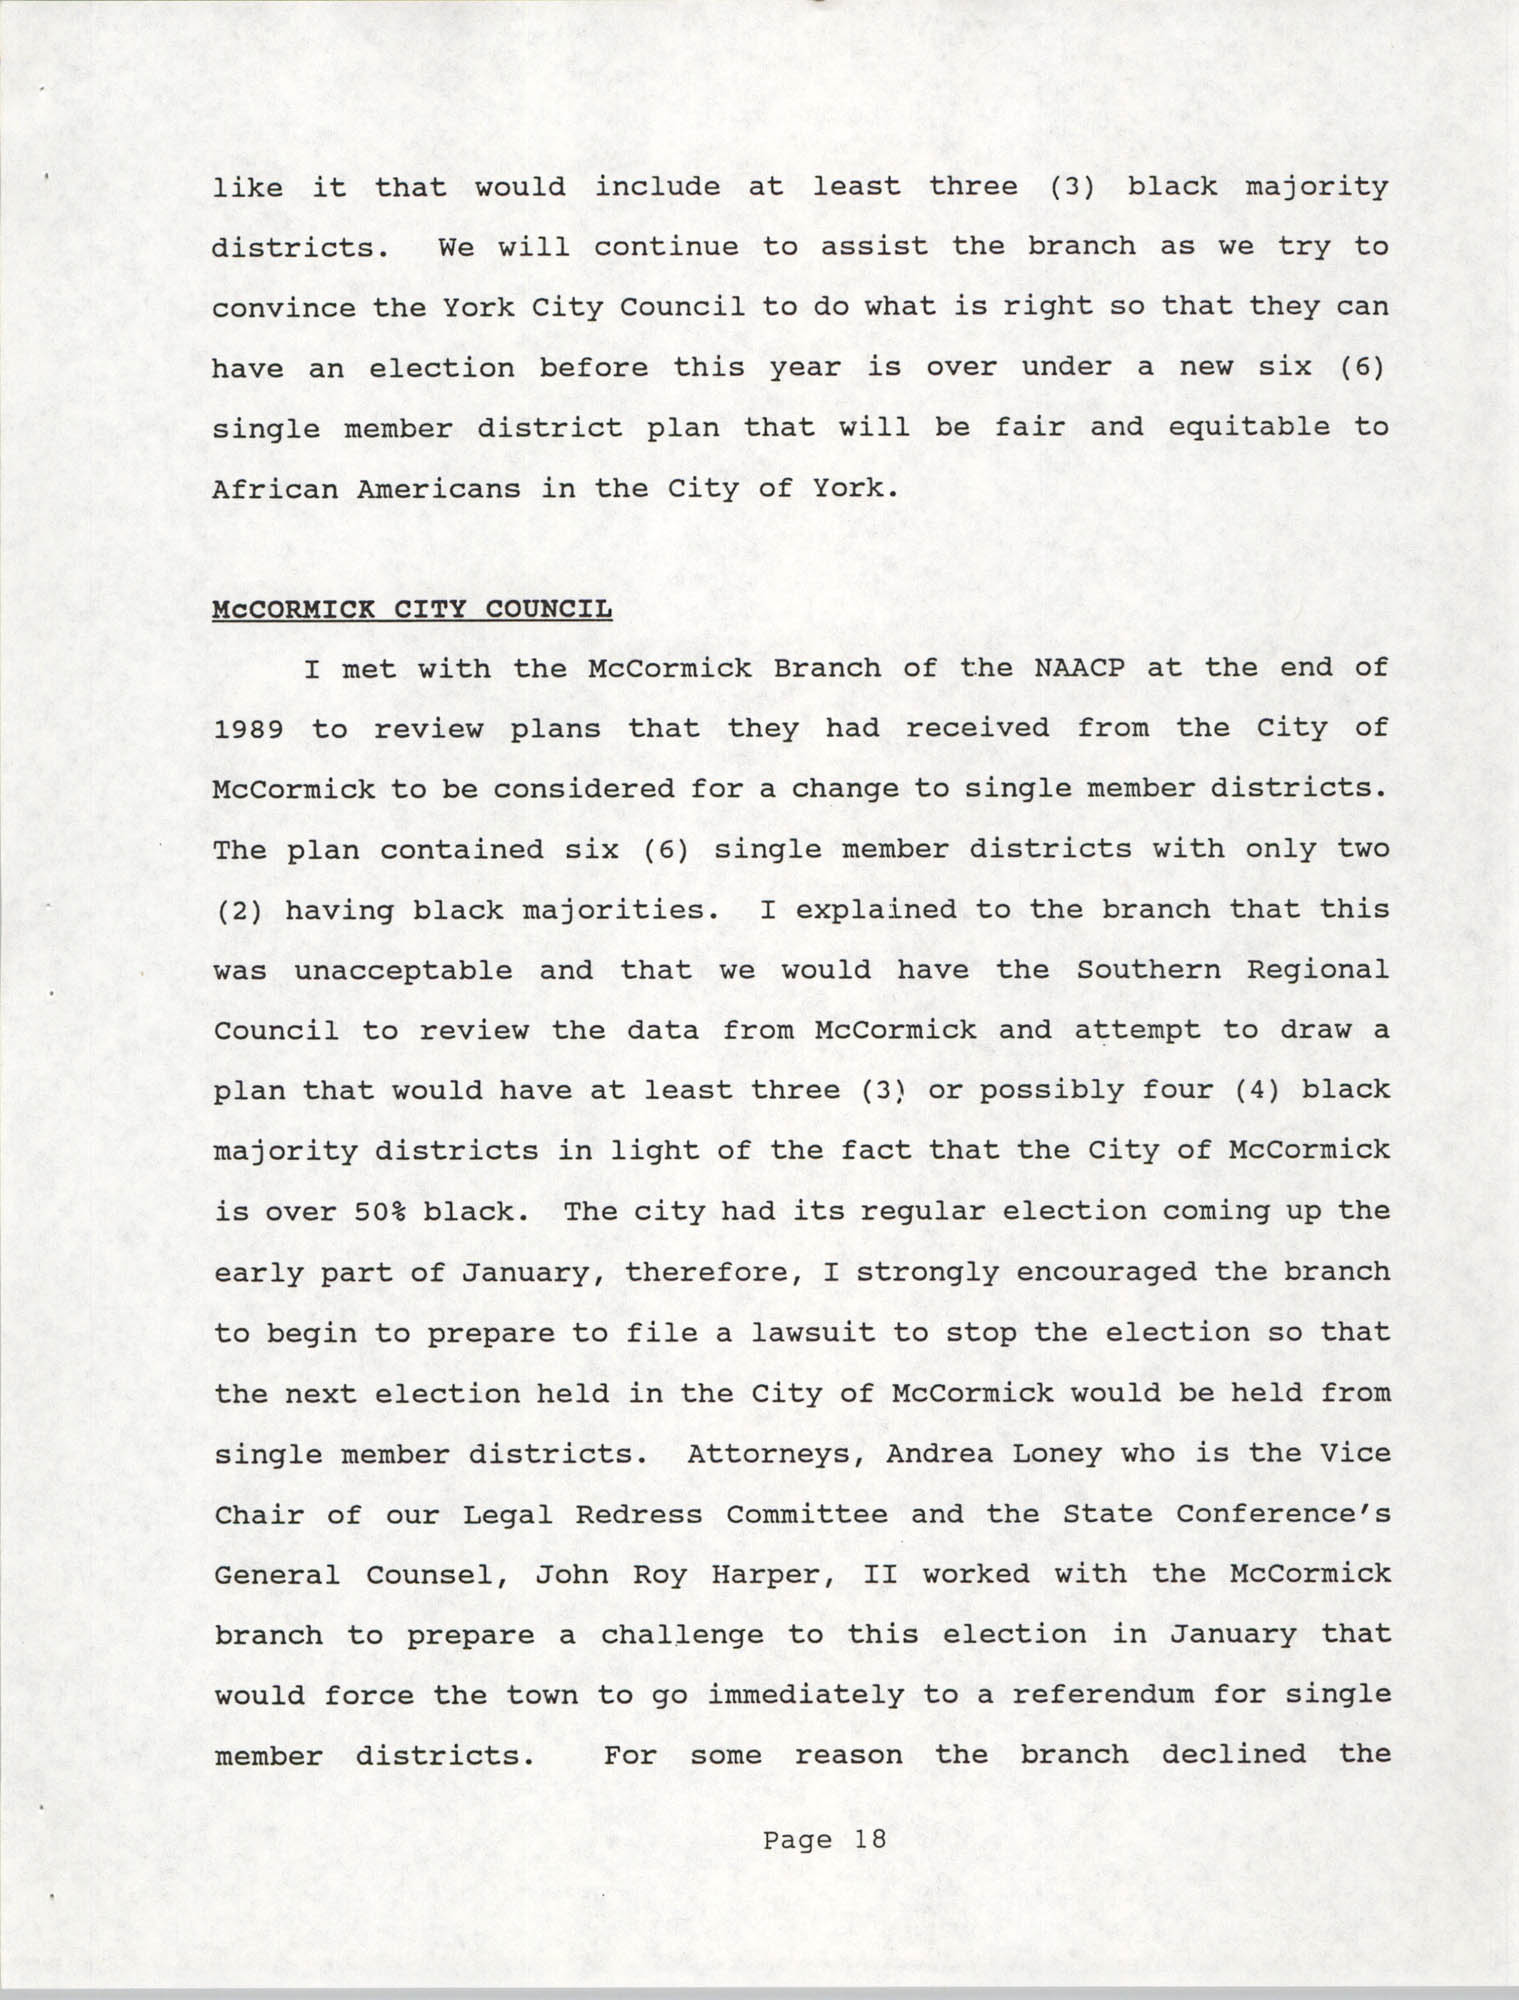 South Carolina Conference of Branches of the NAACP, 1990 Annual Report, Part One, Page 18